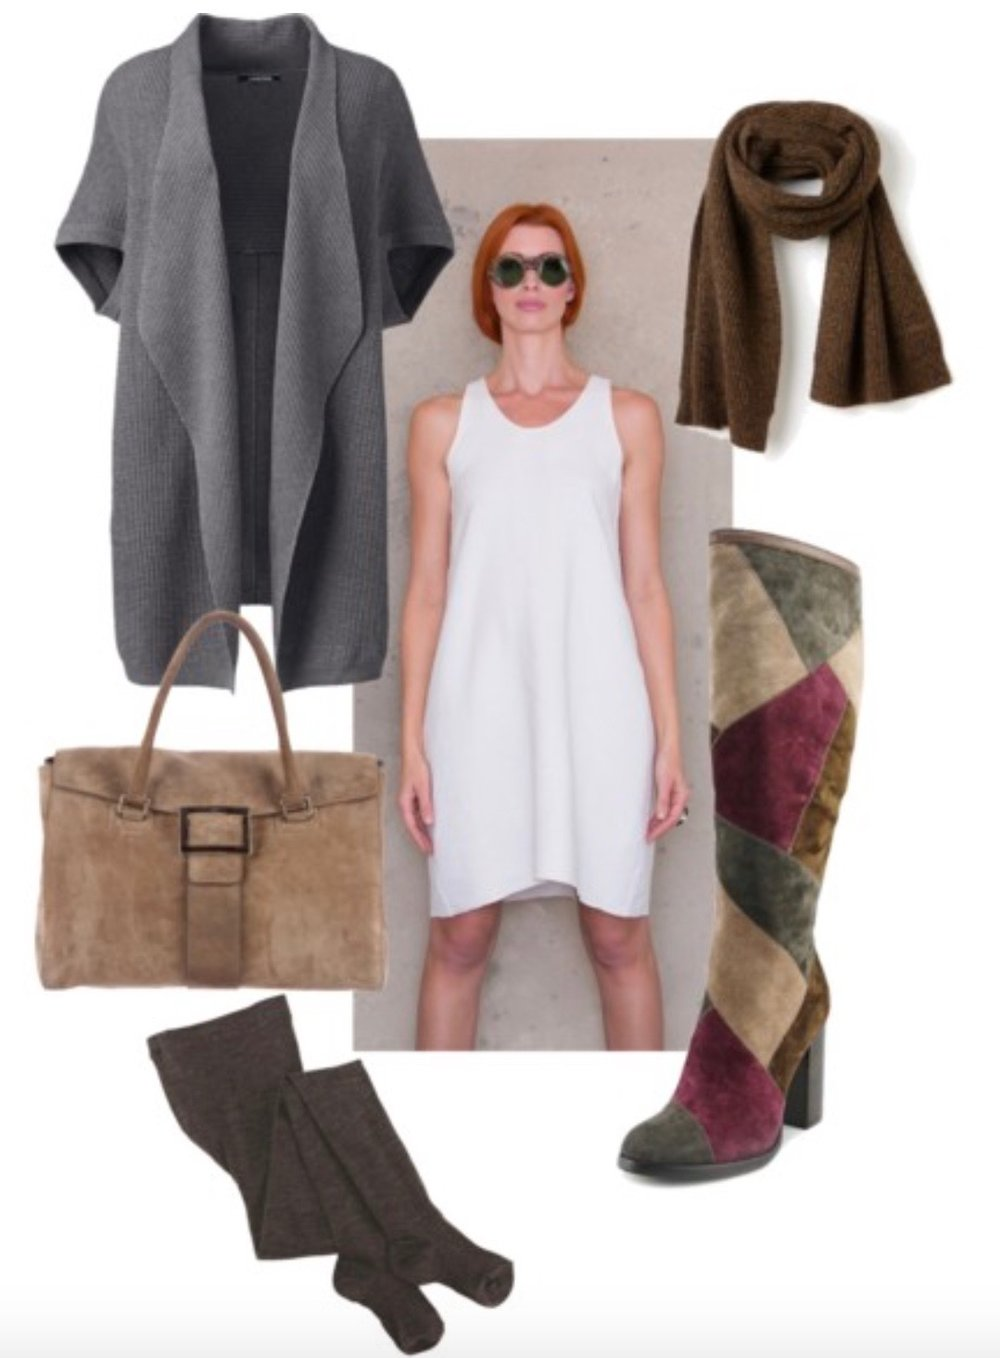 Ann Normandy Design's sewing patterns can easily transition to cooler seasons with layering and a change of accessories. -